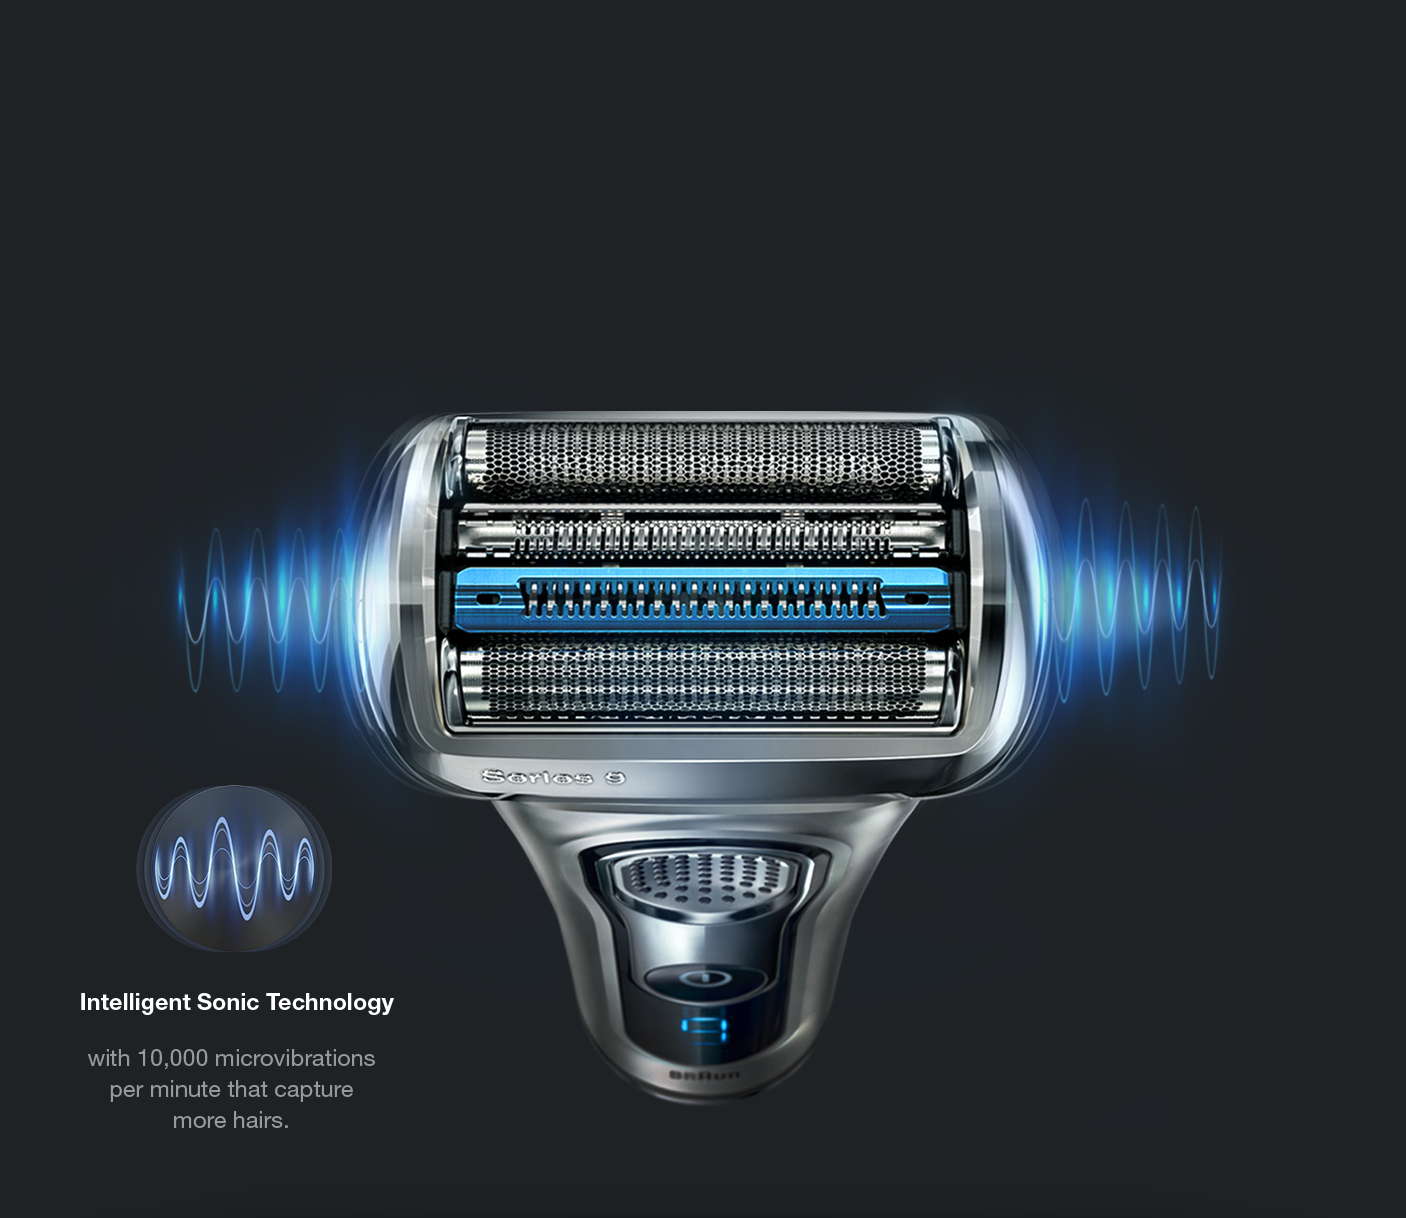 braun-series-shavers-intelligent-sonic-technology